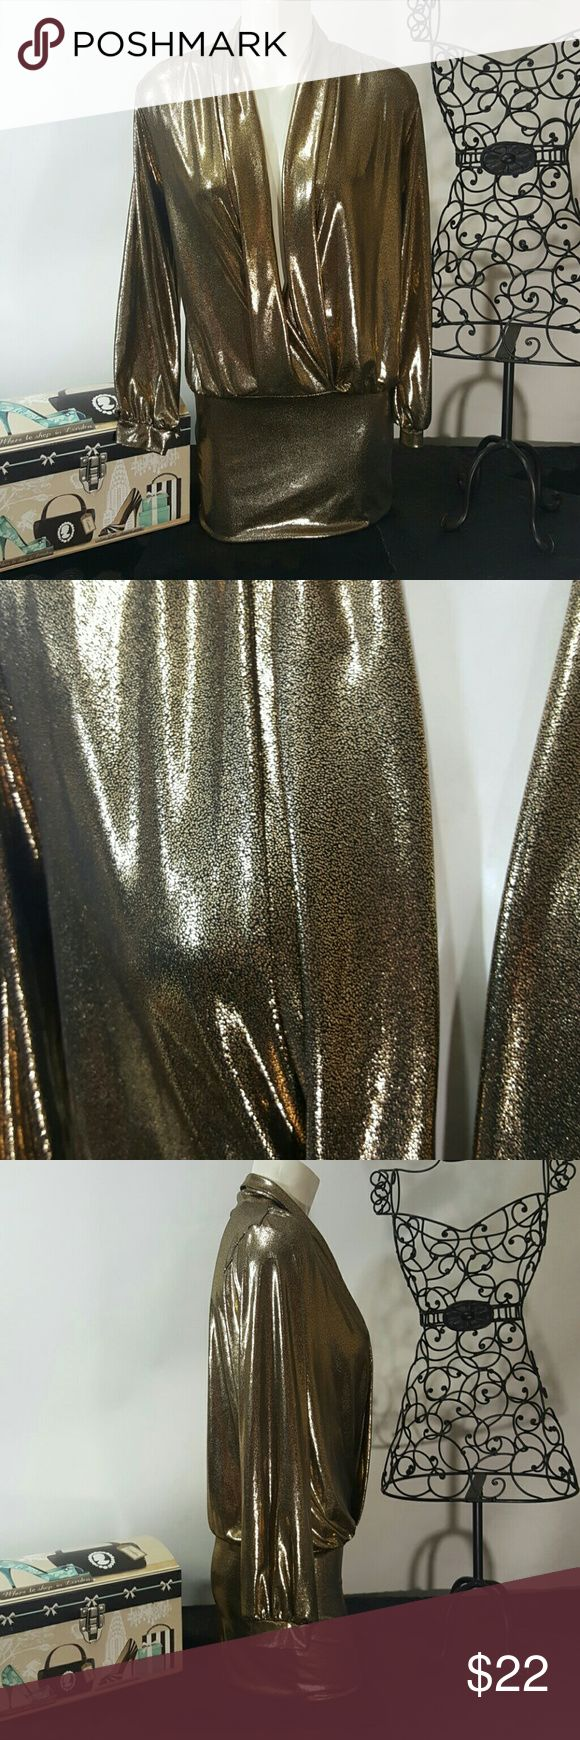 Preloved gold going out dress Very flattering and very low cut in front,  great for a night out on the town wenjle Dresses Mini